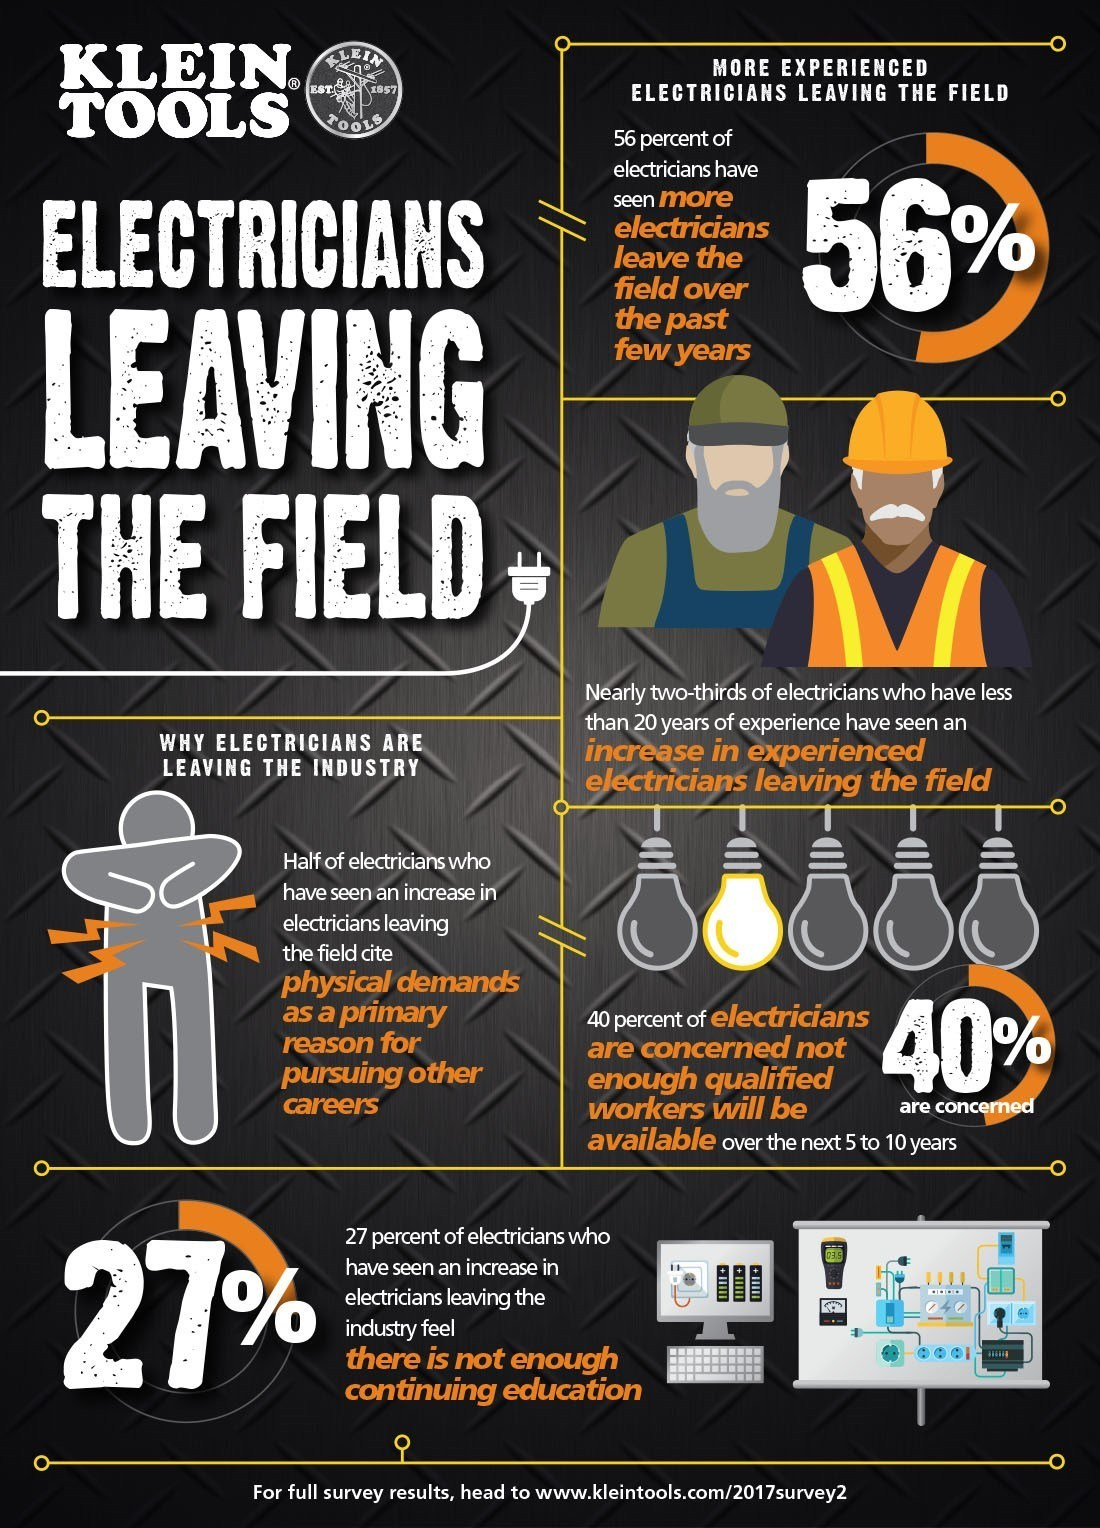 Why are electricians leaving the field?